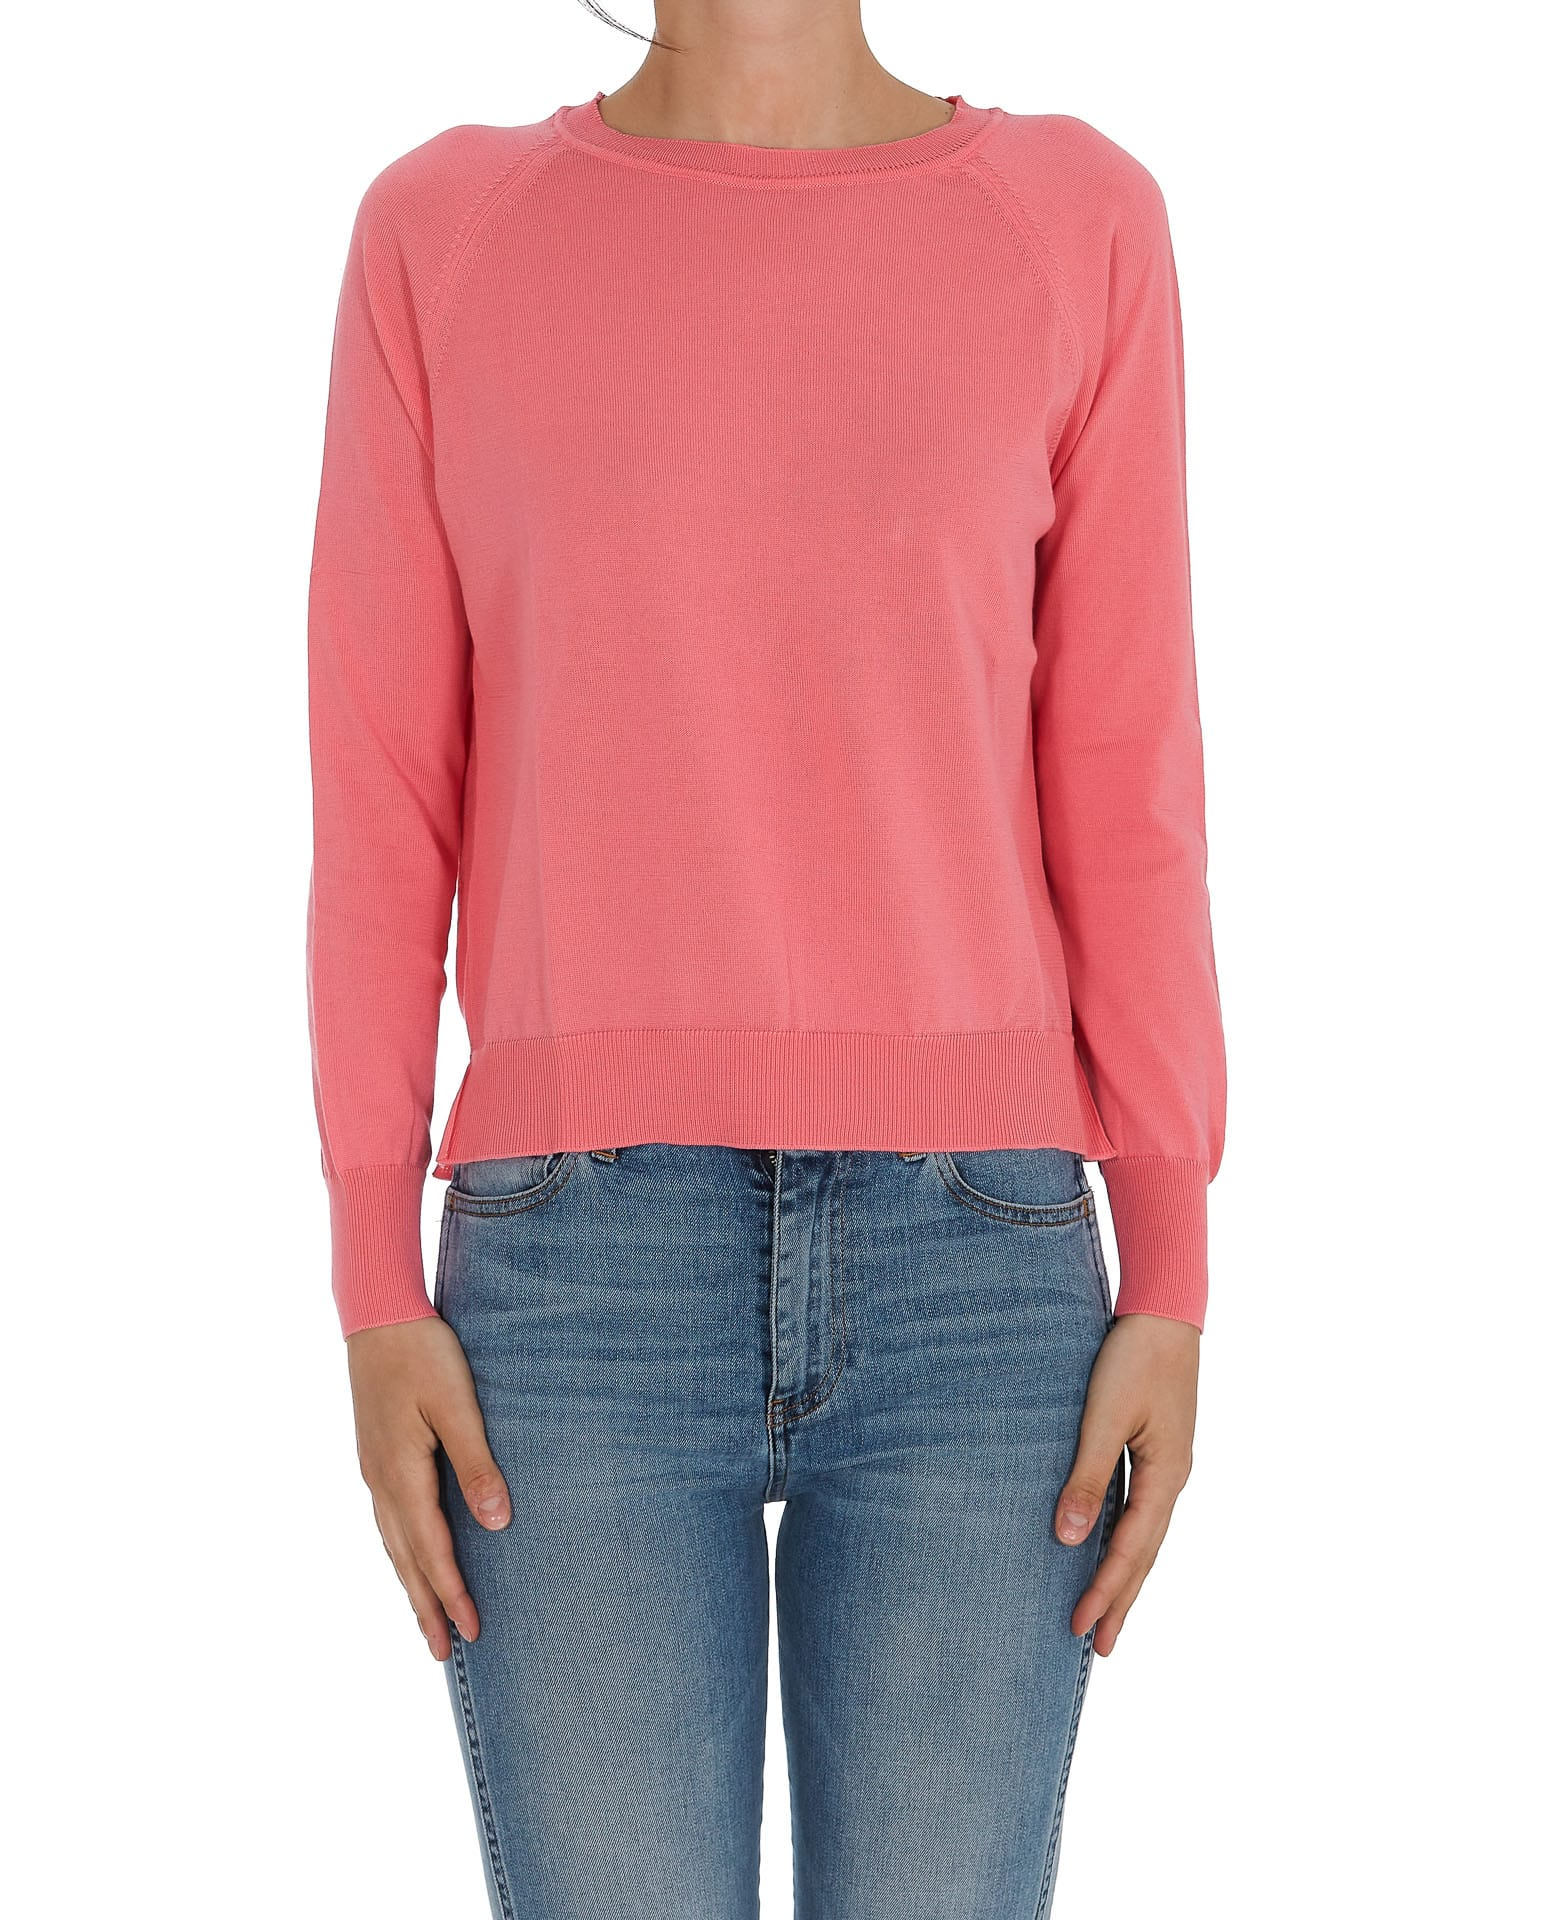 Jucca Ribbed Cotton Crewneck Jumper In Pink